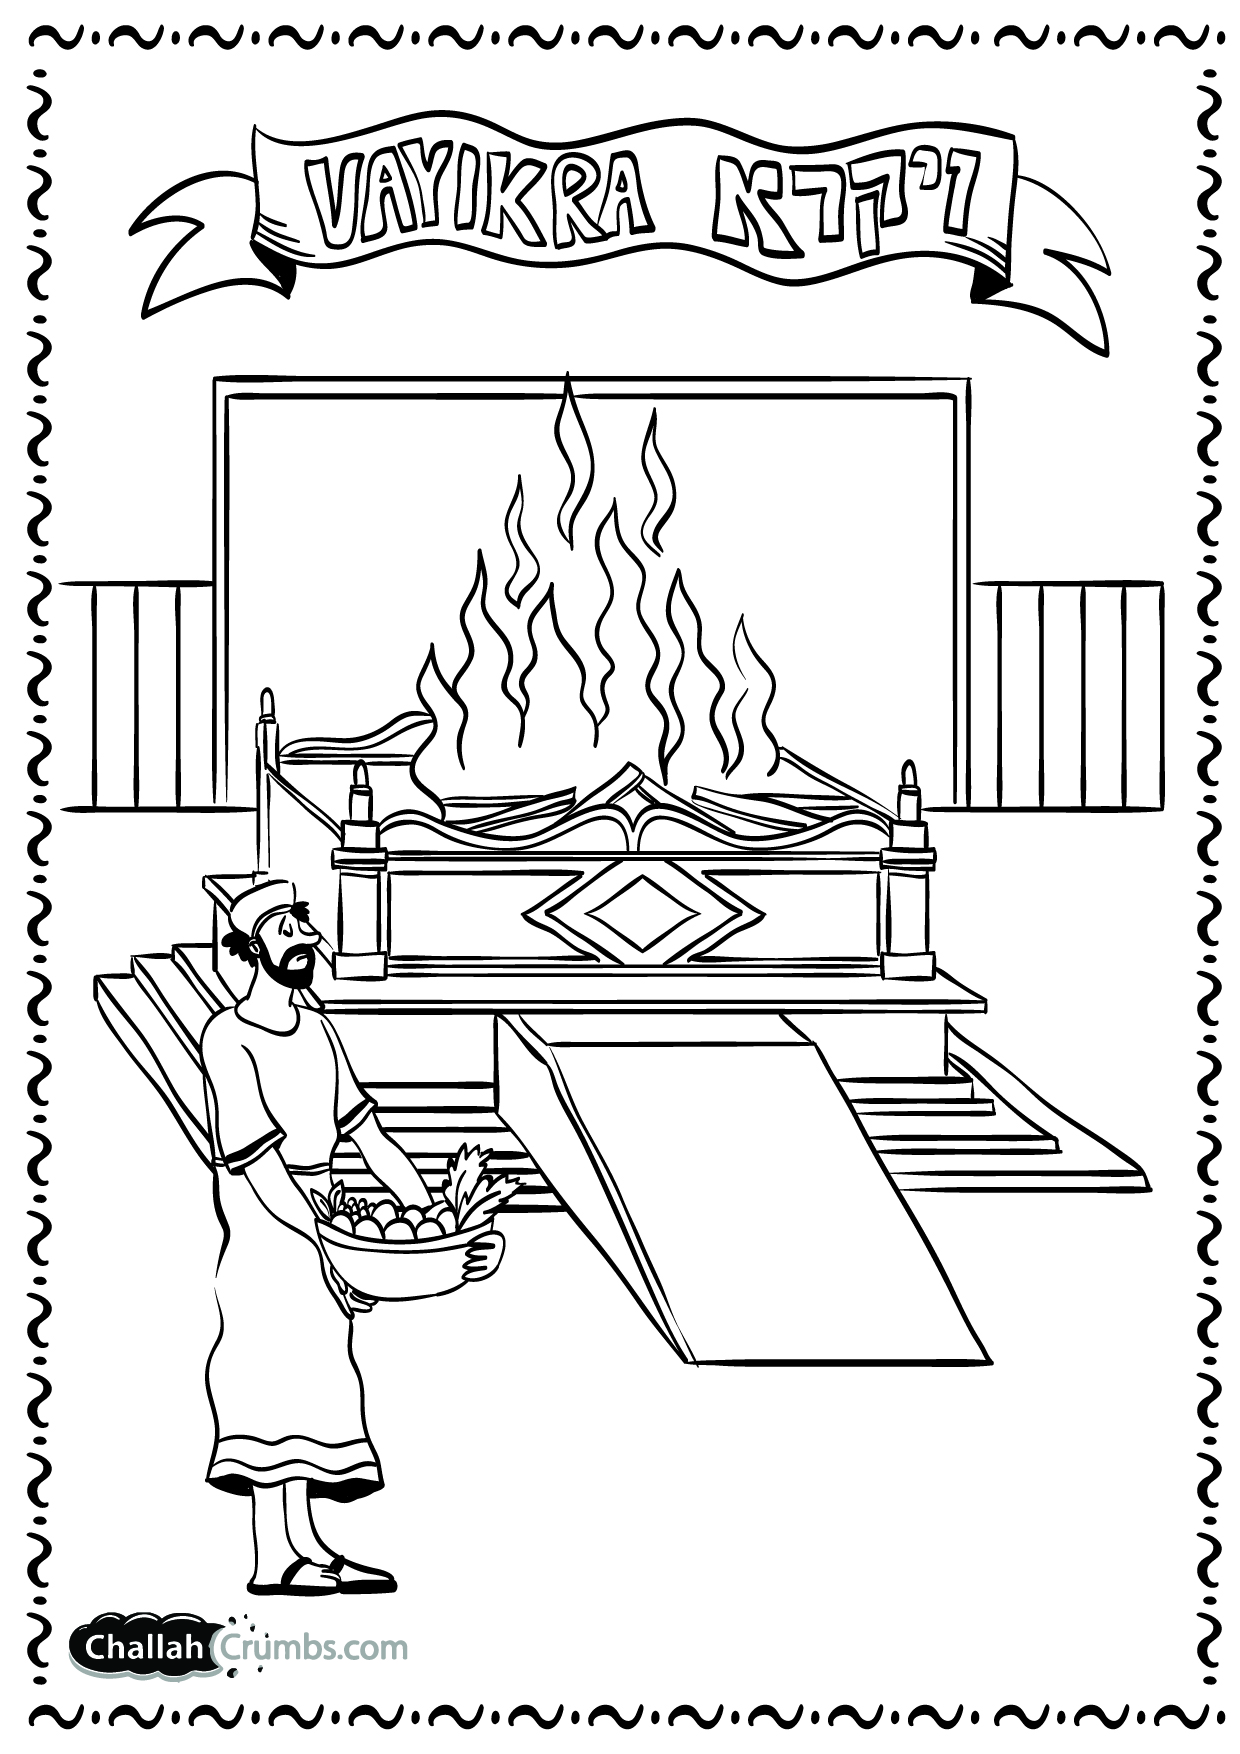 coloring page for parshat vayikra click on picture to print